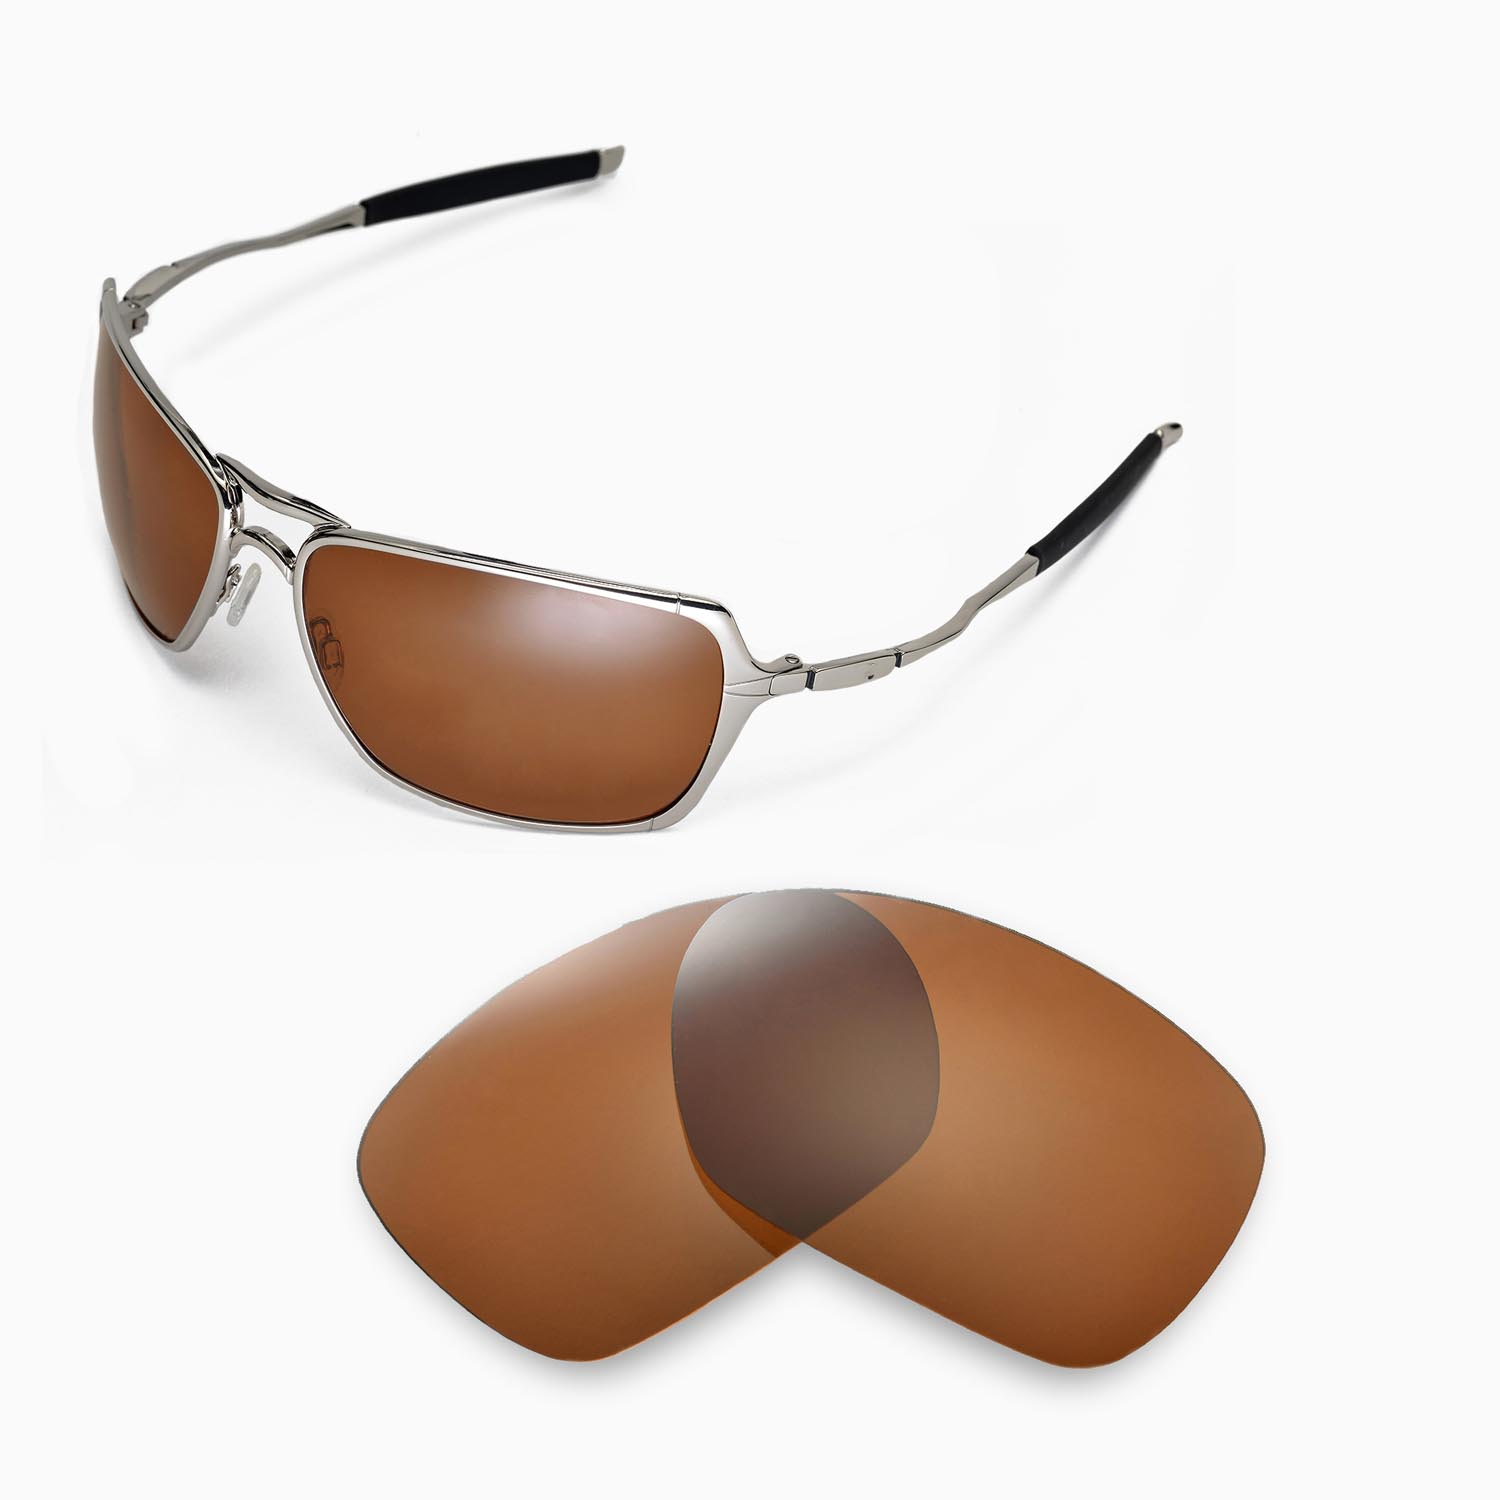 1906a3fd03 New Walleva Polarized Brown Replacement Lenses For Oakley Inmate ...